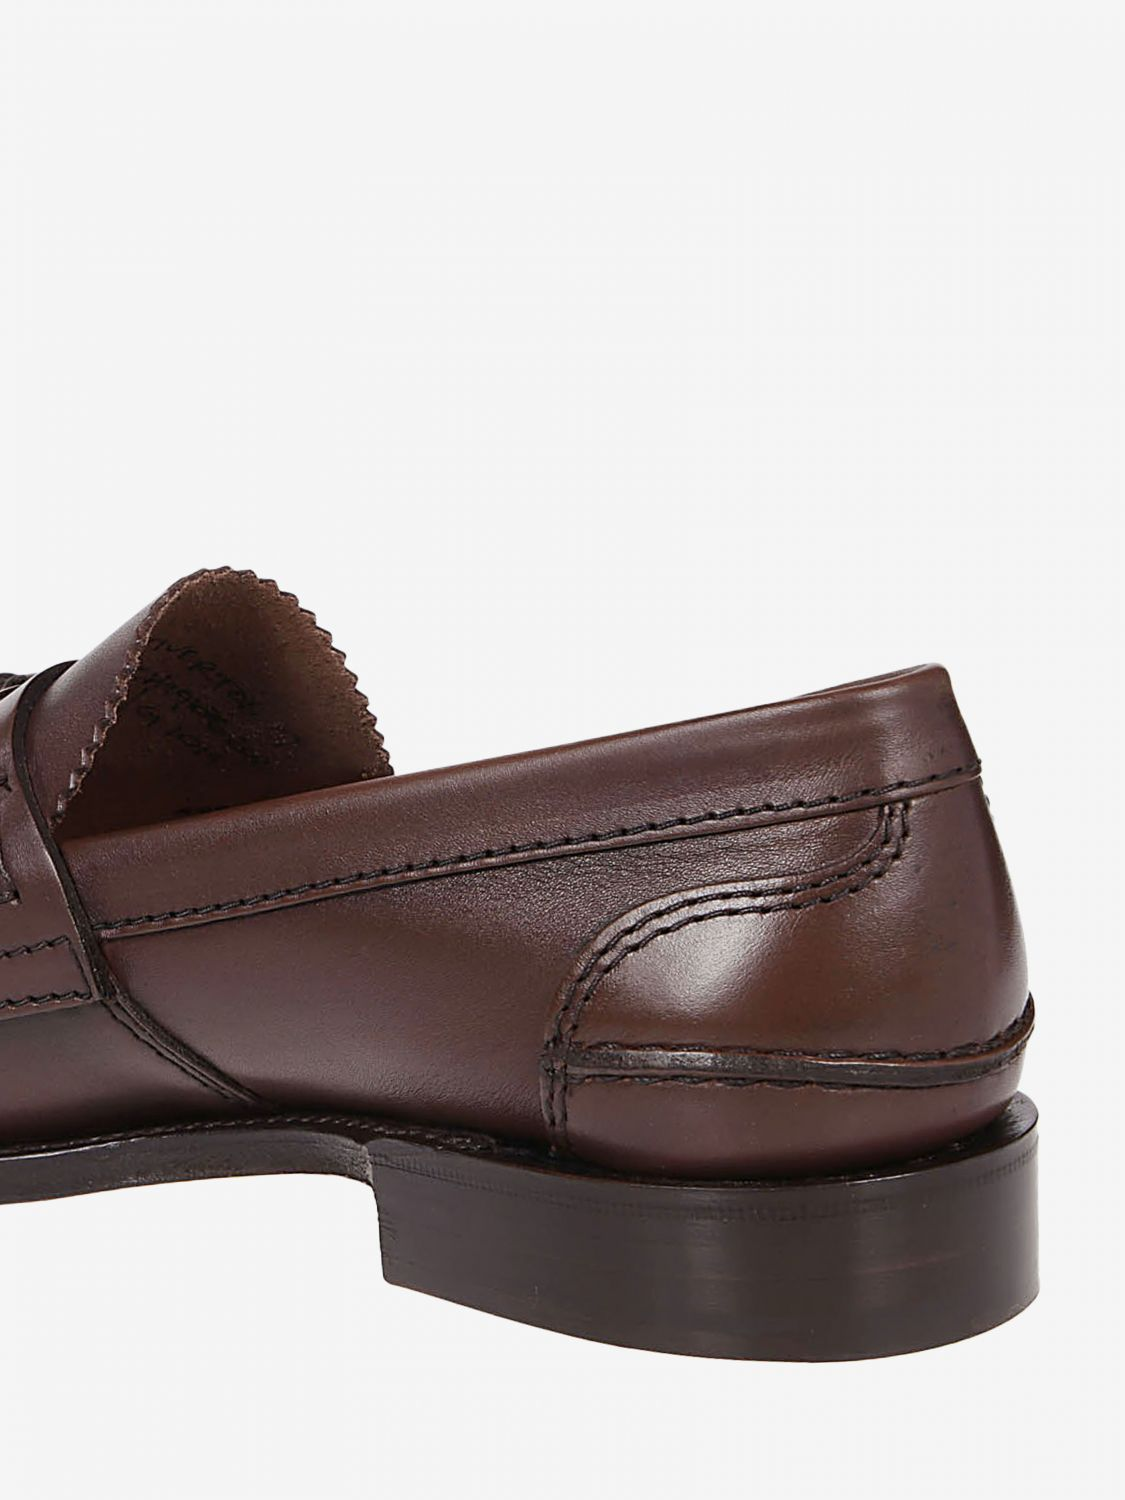 Loafers Church's: Church's moccasin in smooth leather with tassels honey 4